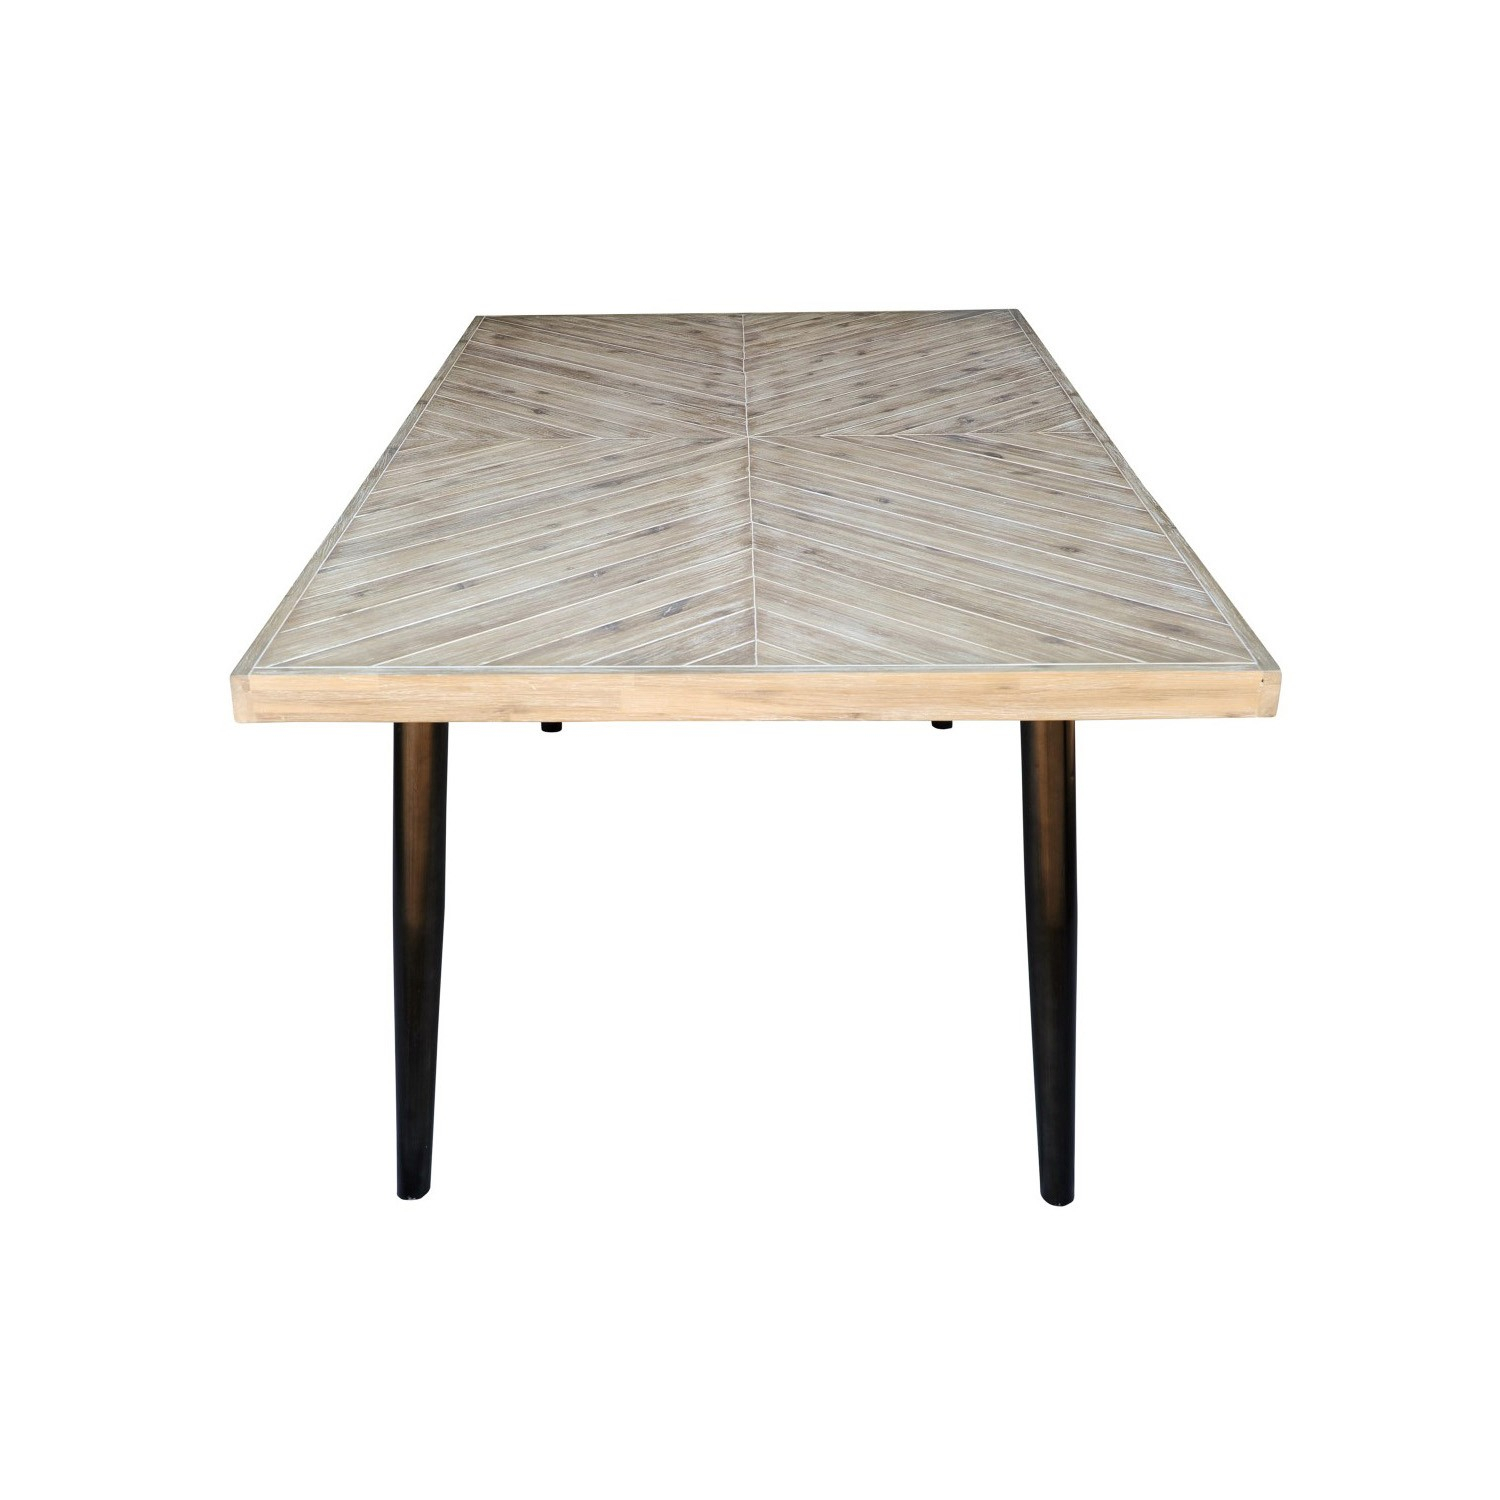 Jasmire Acacia Dining Table/71*39*30 – Td1341 Ea 00 With Regard To Recent Gorla 39'' Dining Tables (View 12 of 15)